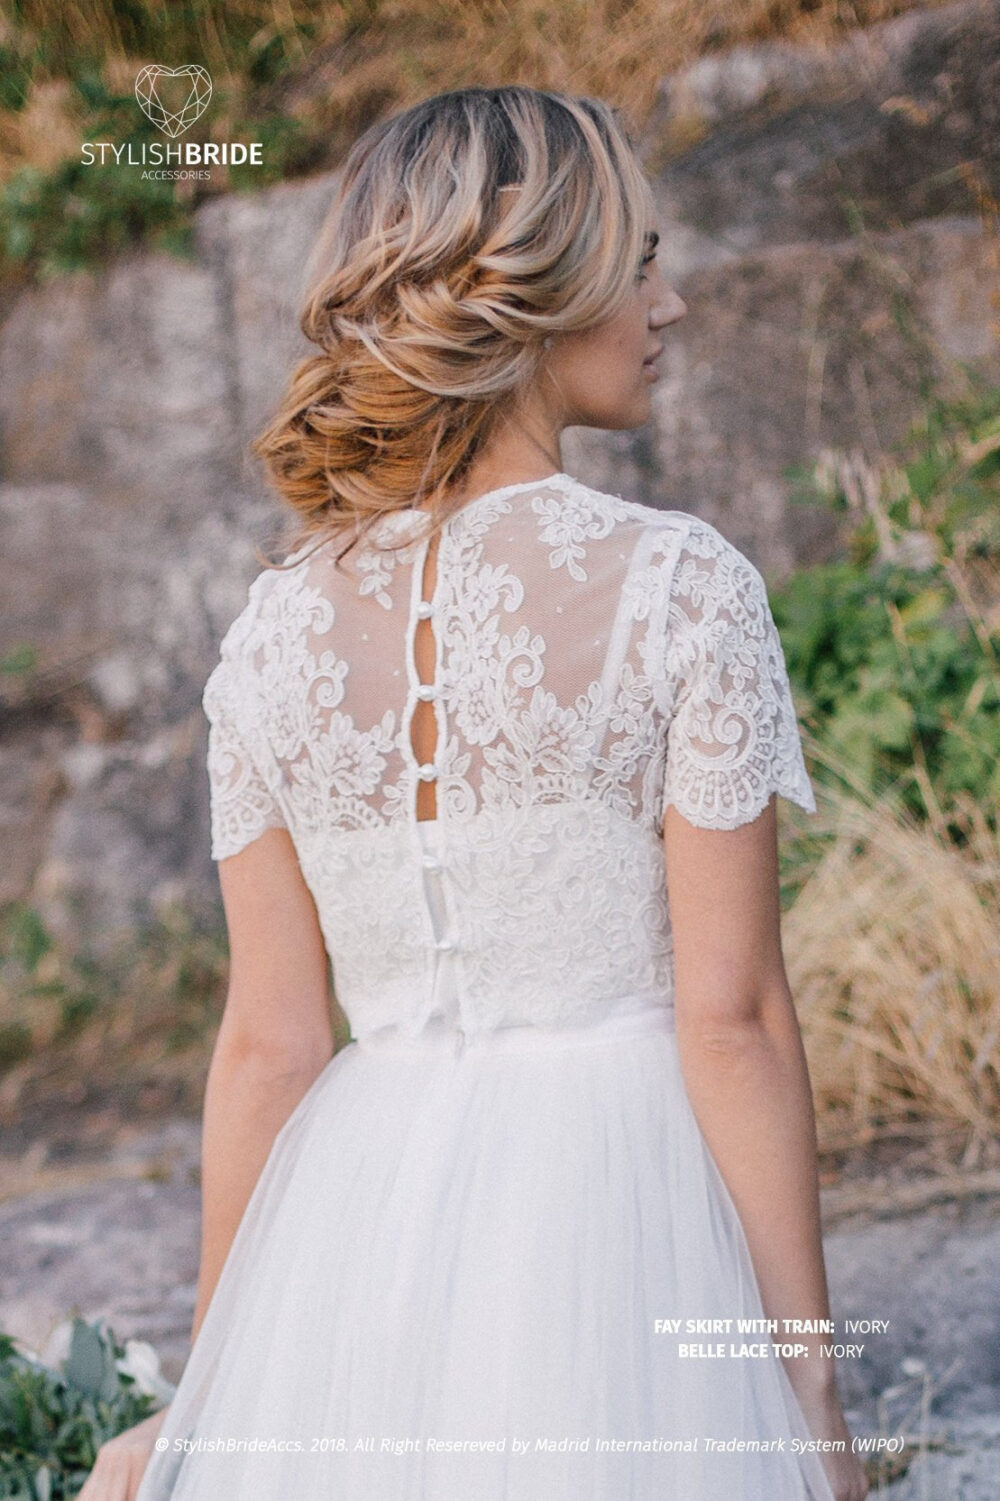 Belle Buttoned Back Wedding Lace Crop Top, White Or Ivory Top Tops, Engagement Lace Top Plus Size